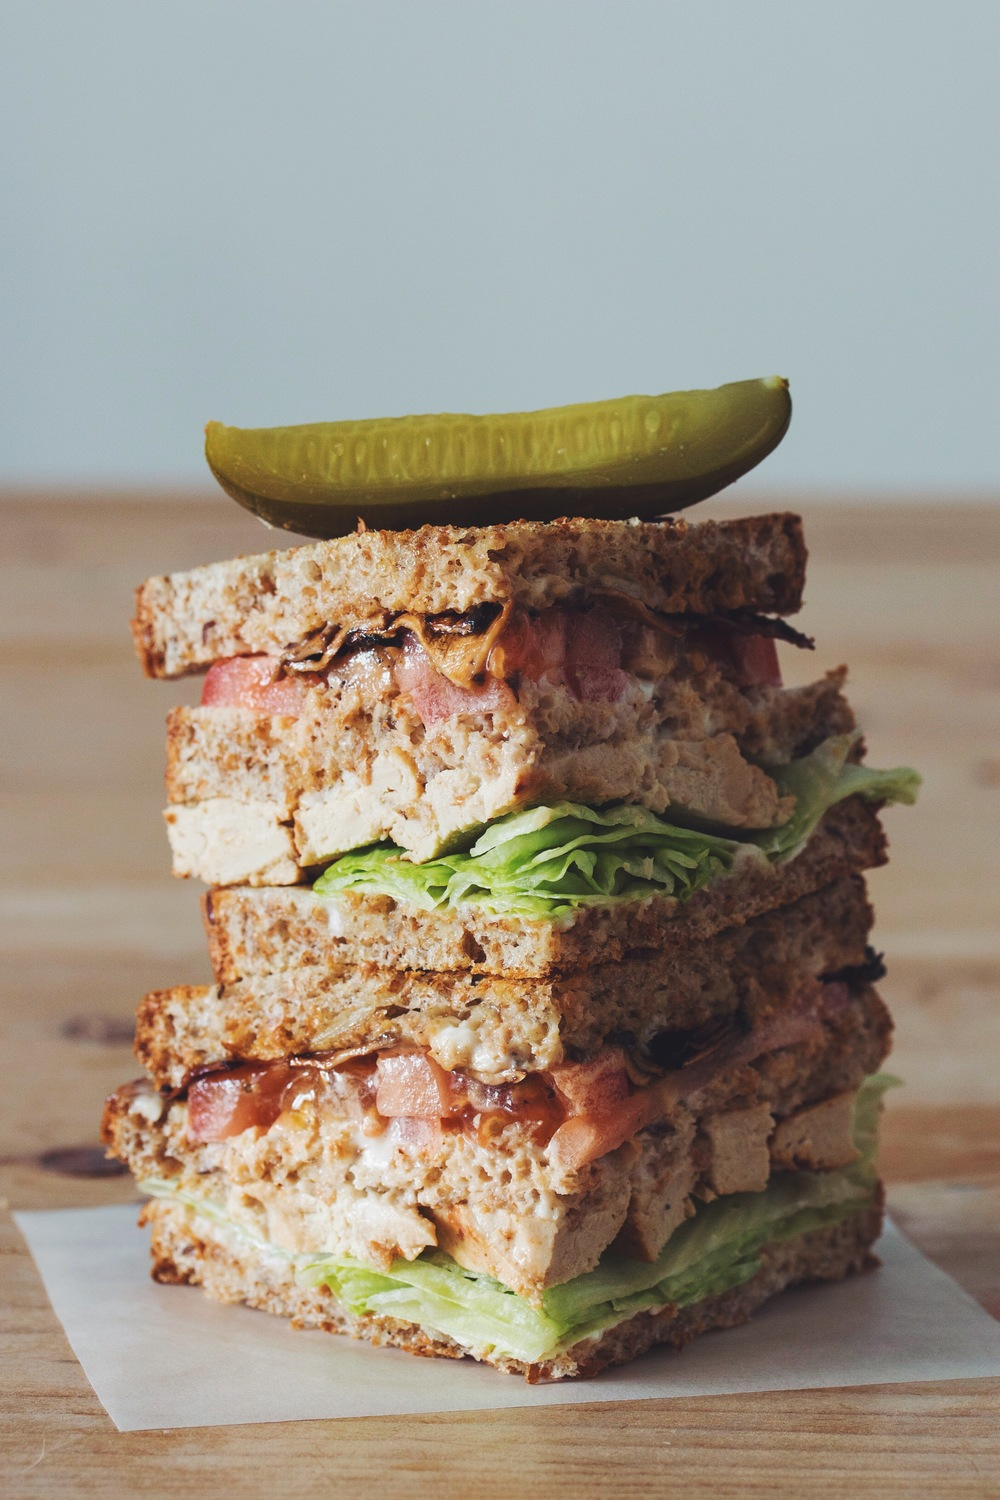 #vegan clubhouse sandwich | RECIPE on hotforfoodblog.com